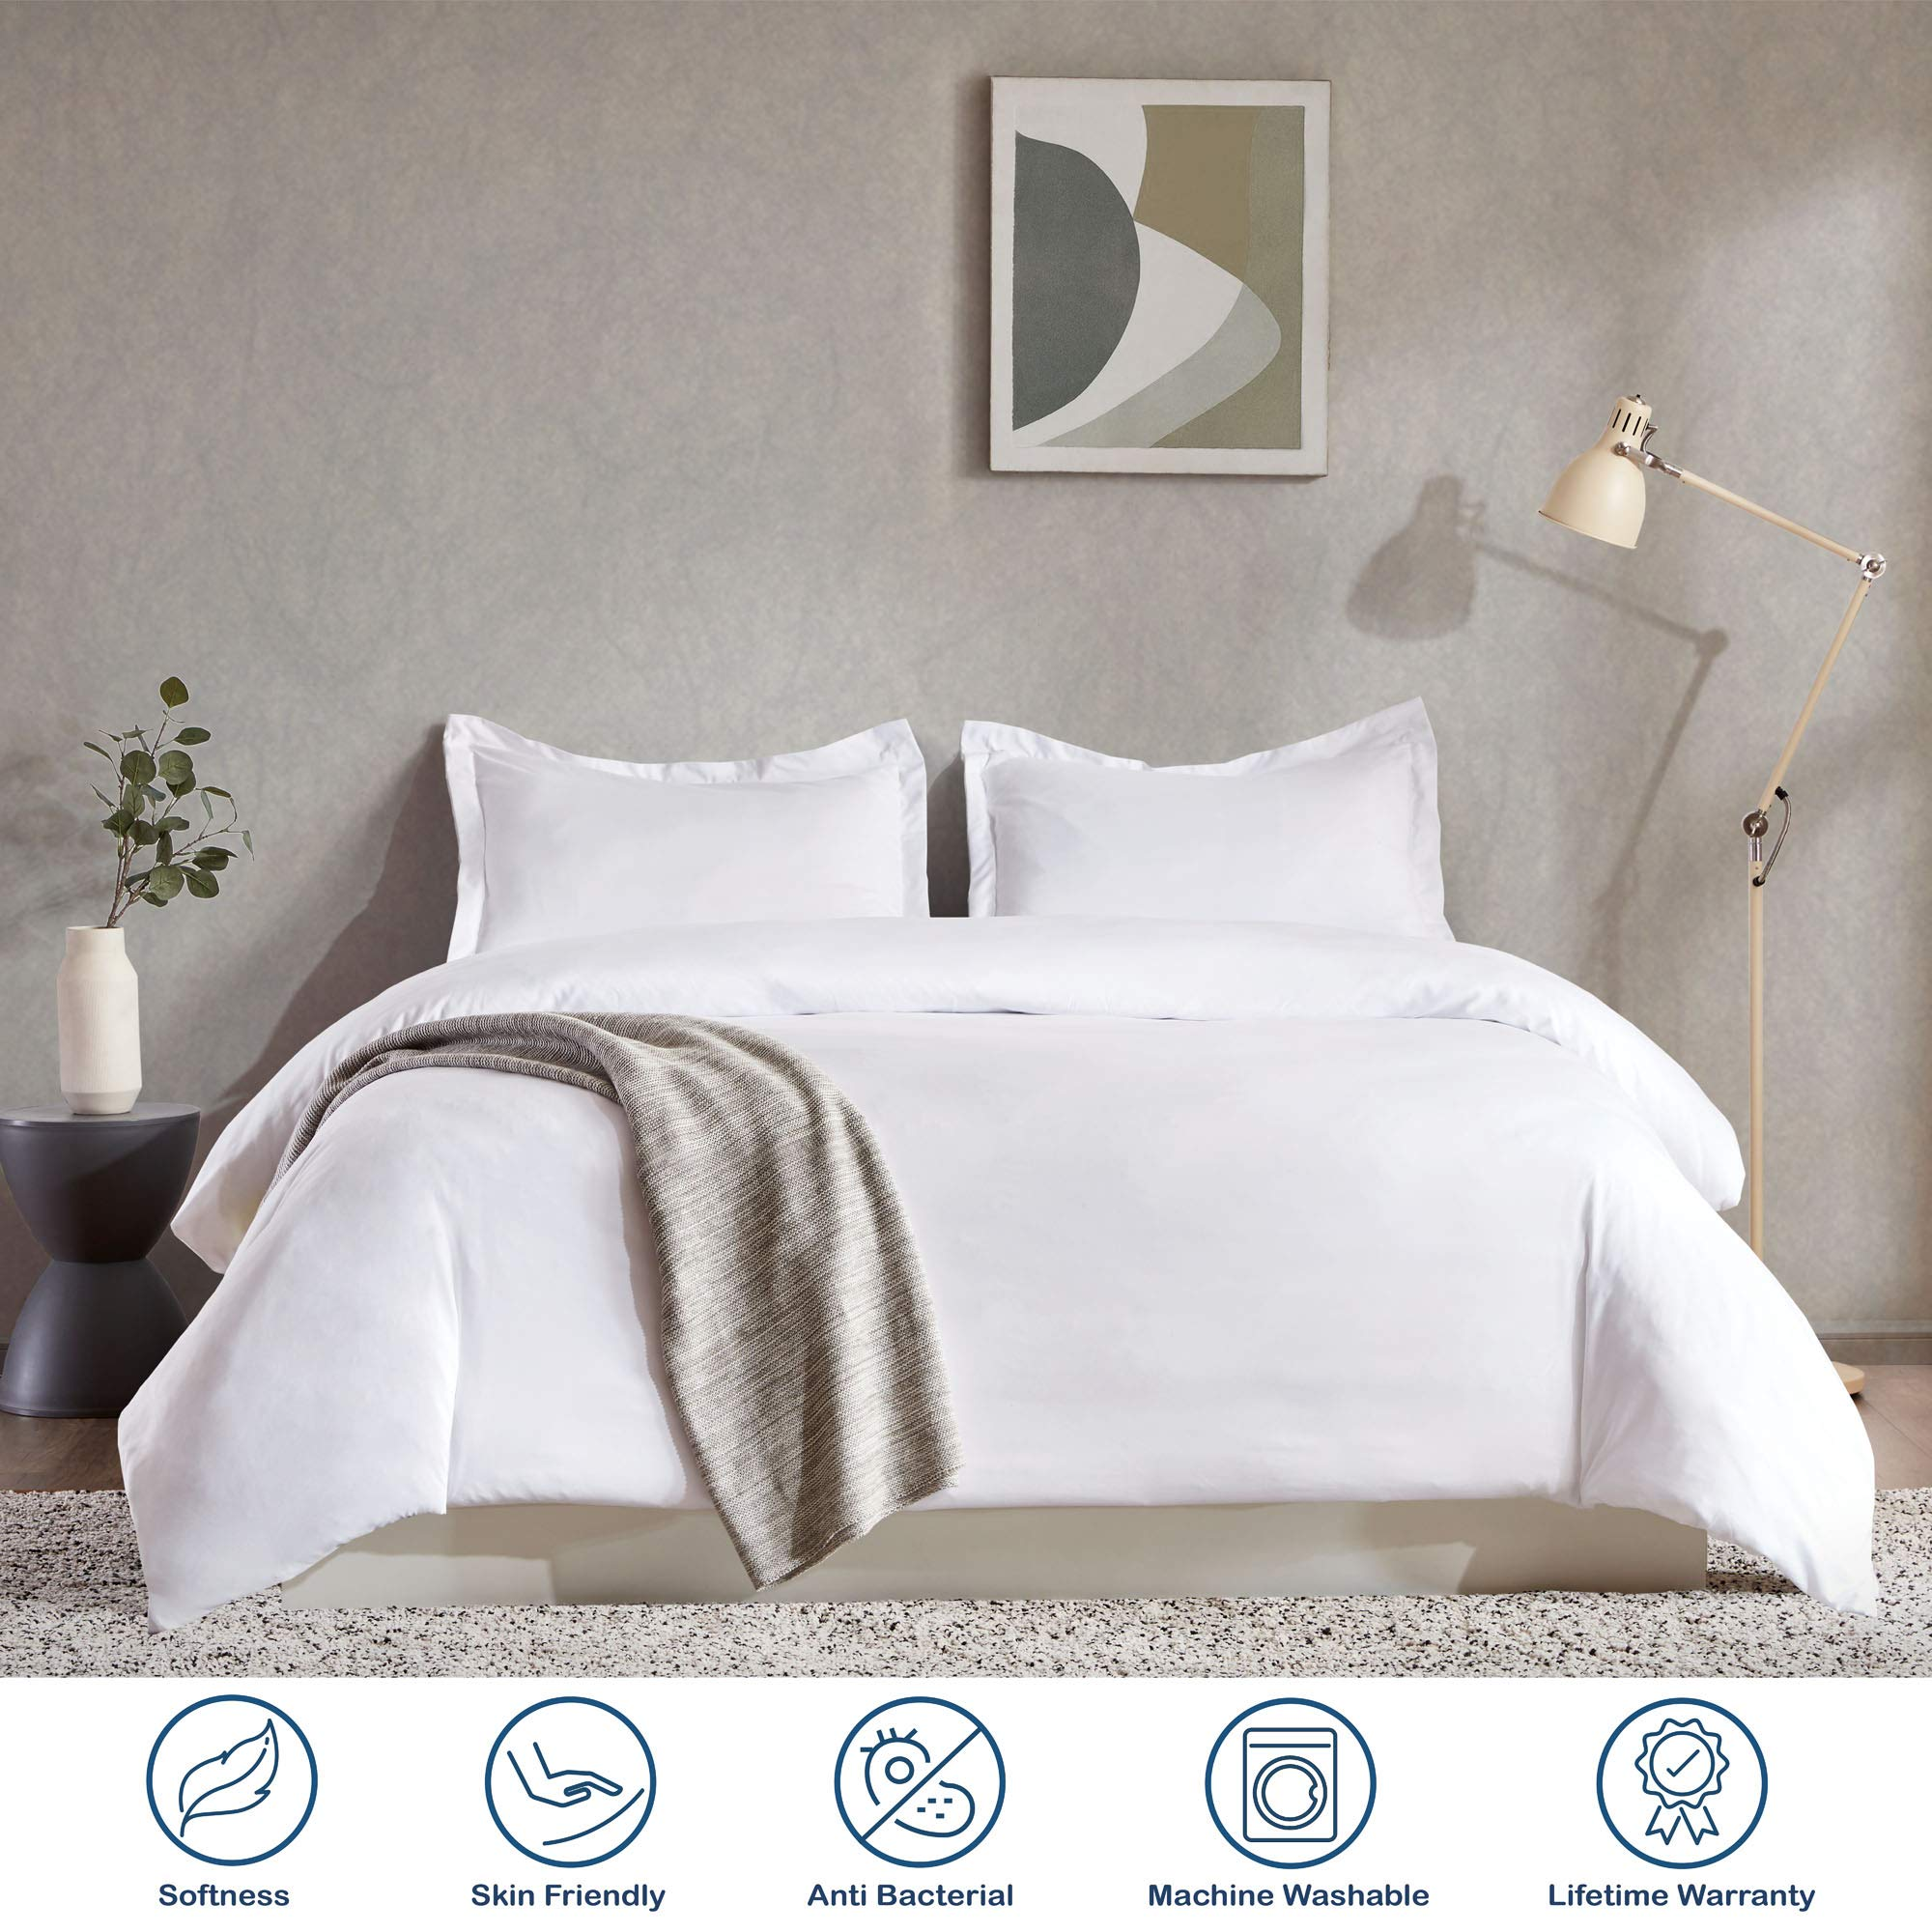 Sleep Zone Bedding Duvet Cover Cooling 120gsm Soft Zipper Closure Corner Ties 3 PC, White,Full/Queen